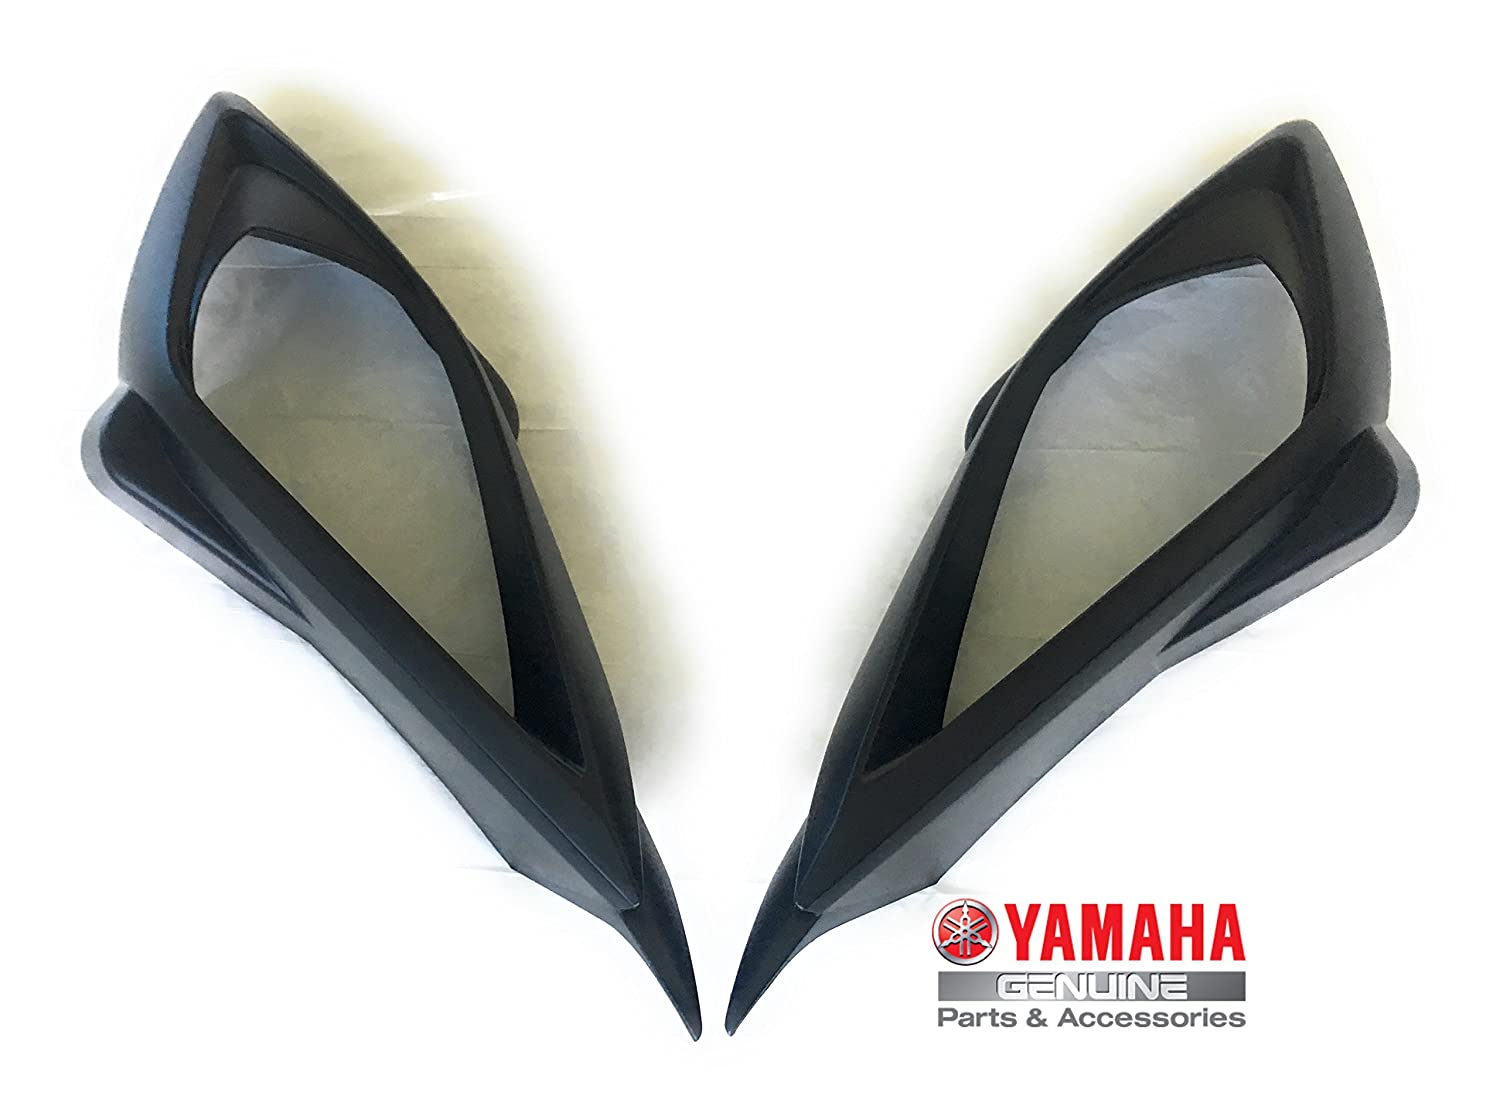 OEM Yamaha Raptor 700 rechts/links Scheinwerfer Trim Cover: Amazon ...